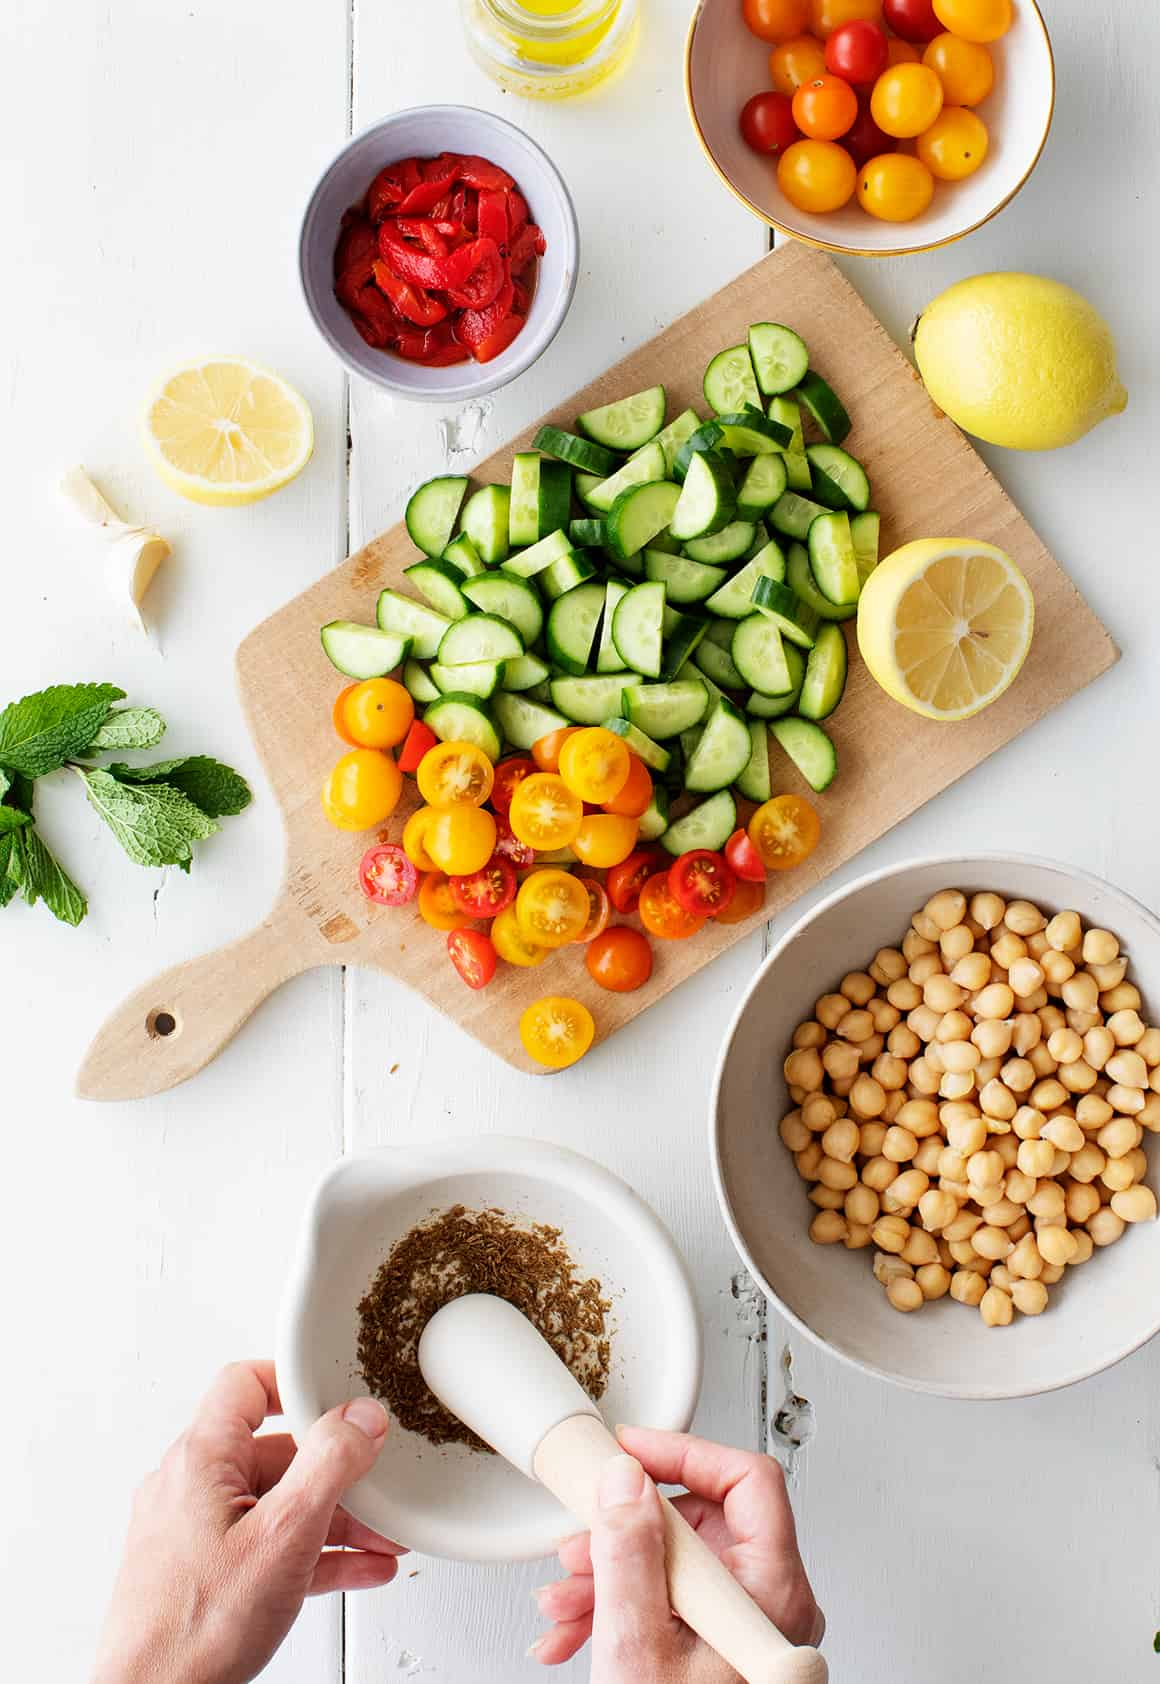 Chickpea salad recipe steps